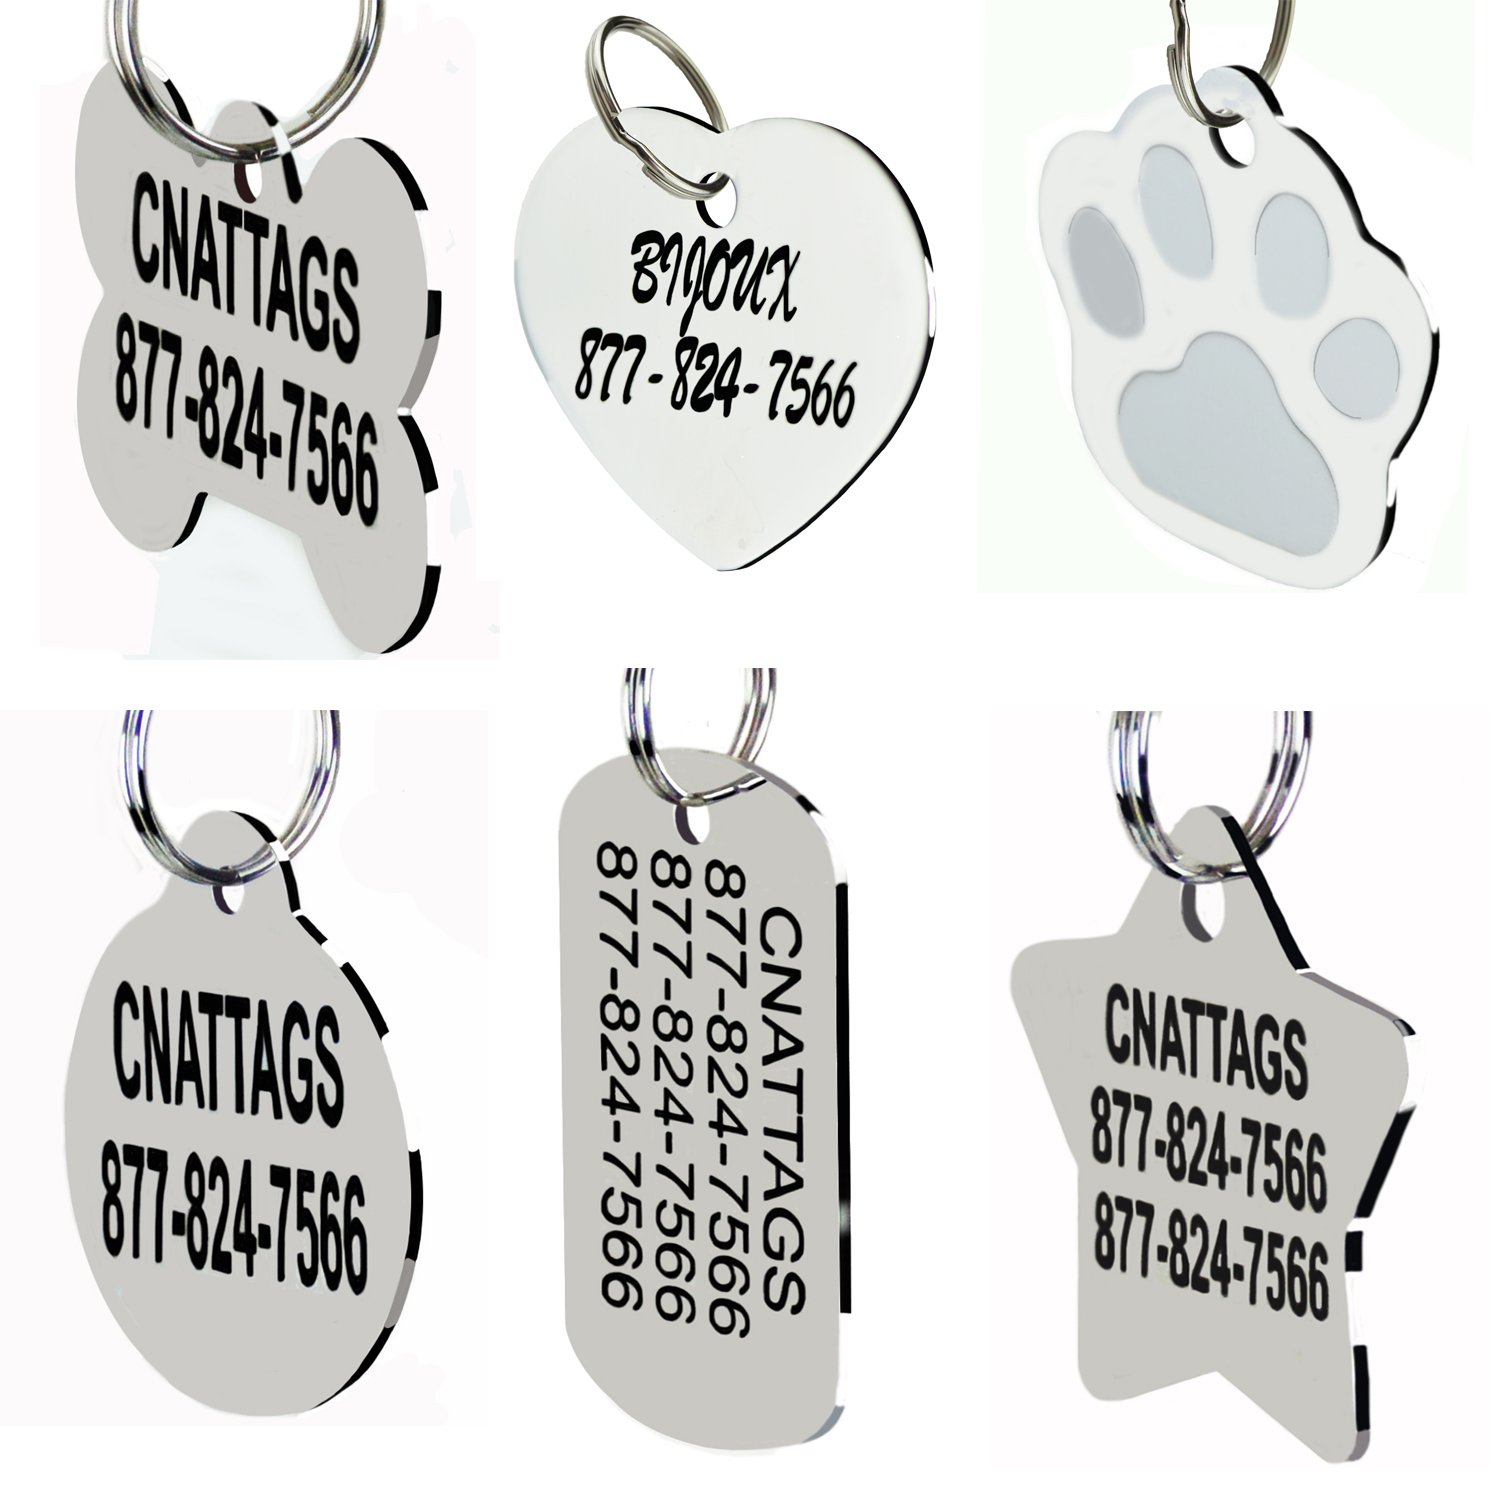 The Best Personalized Pet Identification Tags In 2018: Reviews & Buying Guide 10